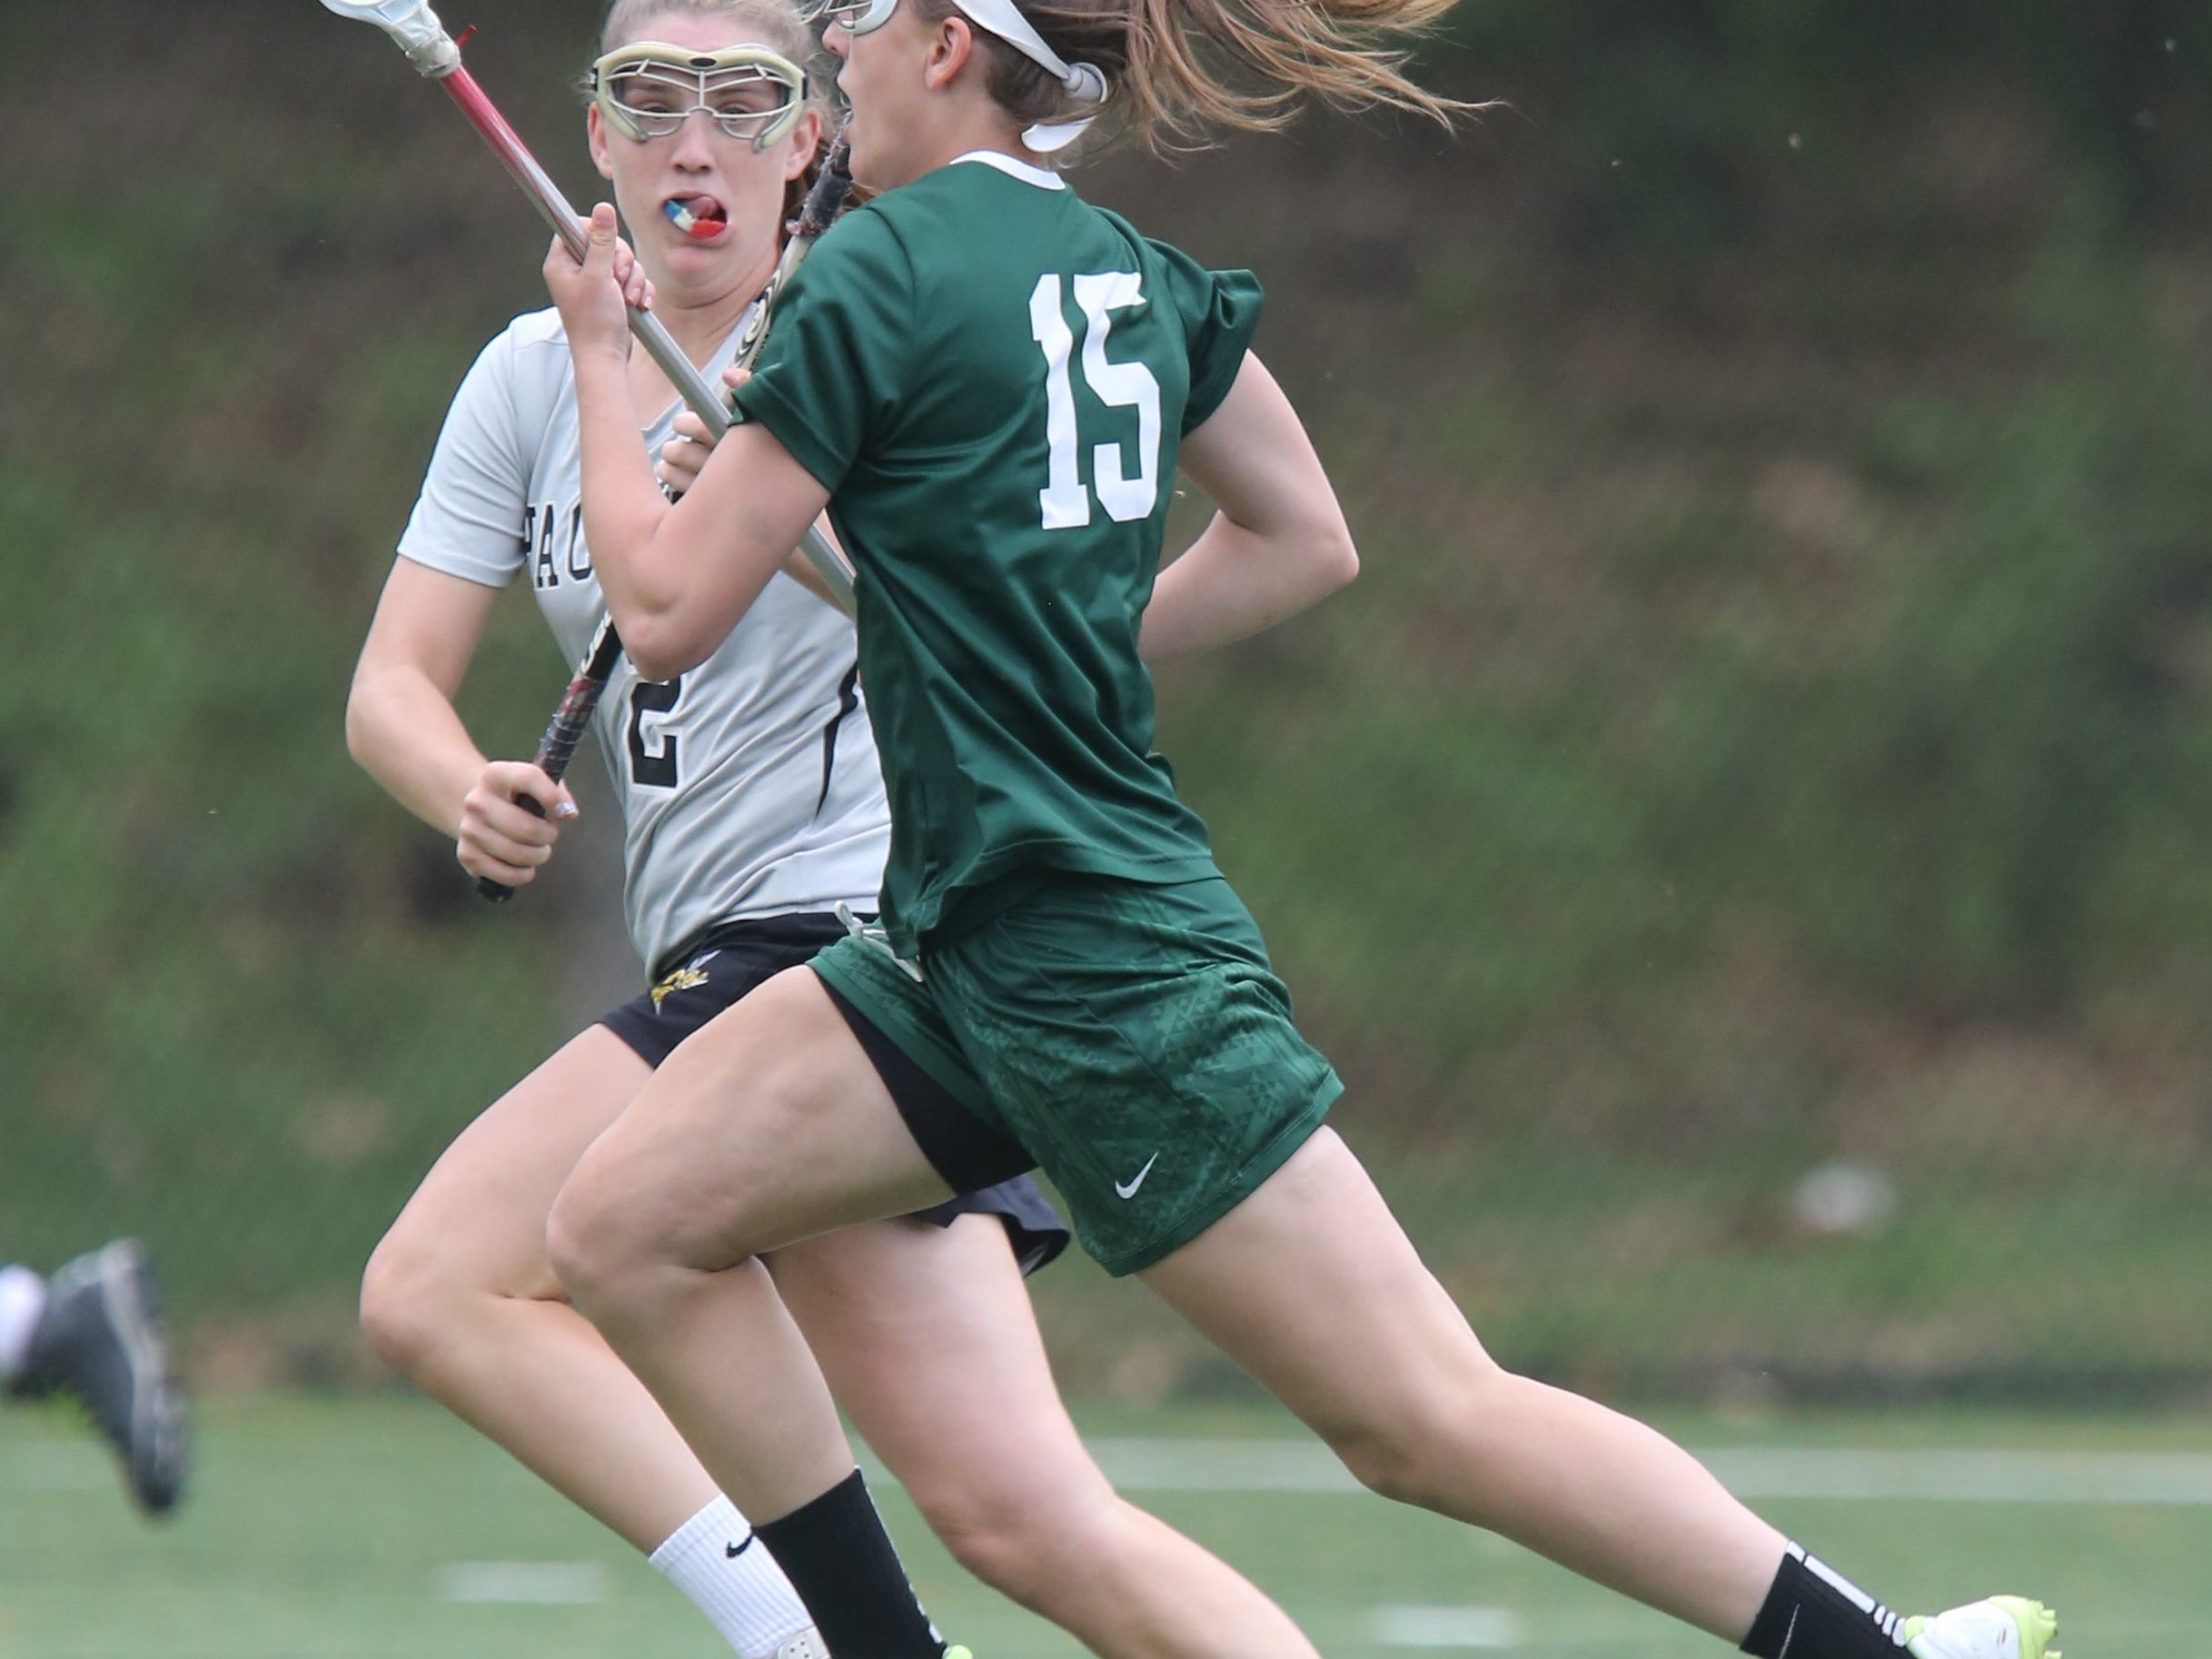 Hackley's Sammy Mueller (2) guards Yorktown's Ashley Stilo (15) as she carries the ball up the field during girls lacrosse action in Tarrytown on May 12, 2015. Yorktown defeated Hackley 11-5.